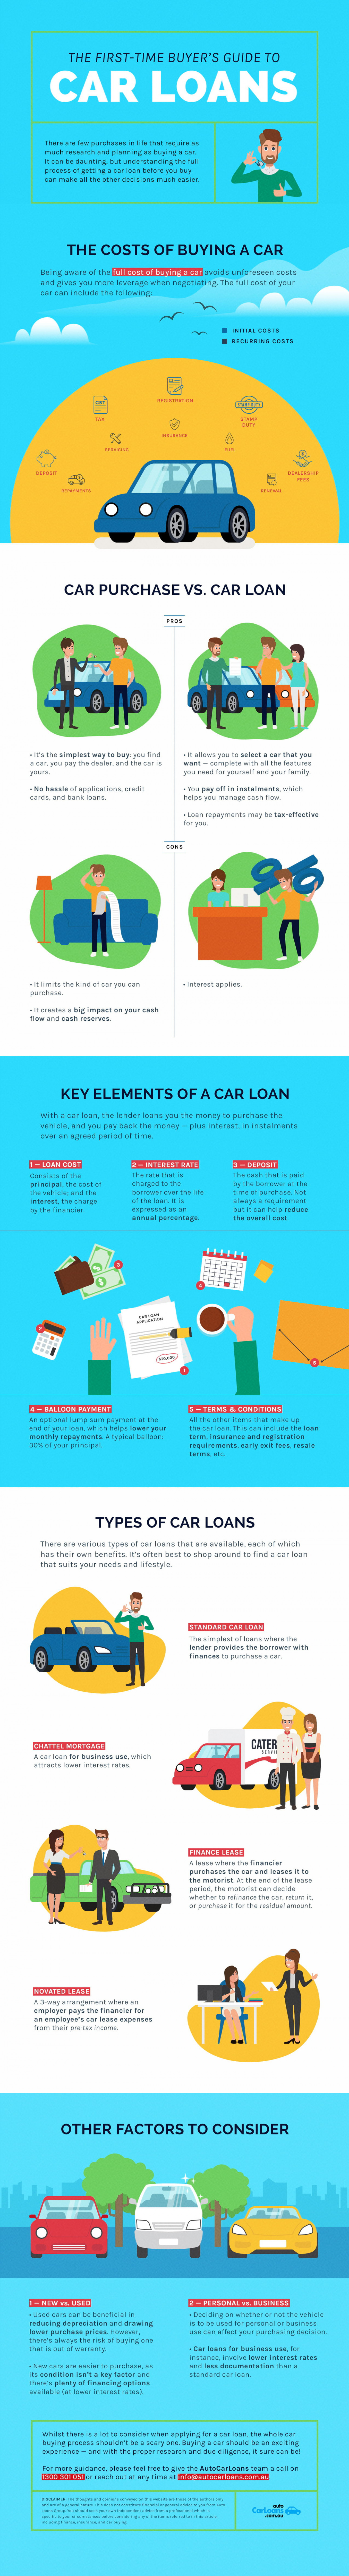 The First-Time Buyer's Guide to Car Loans Infographic